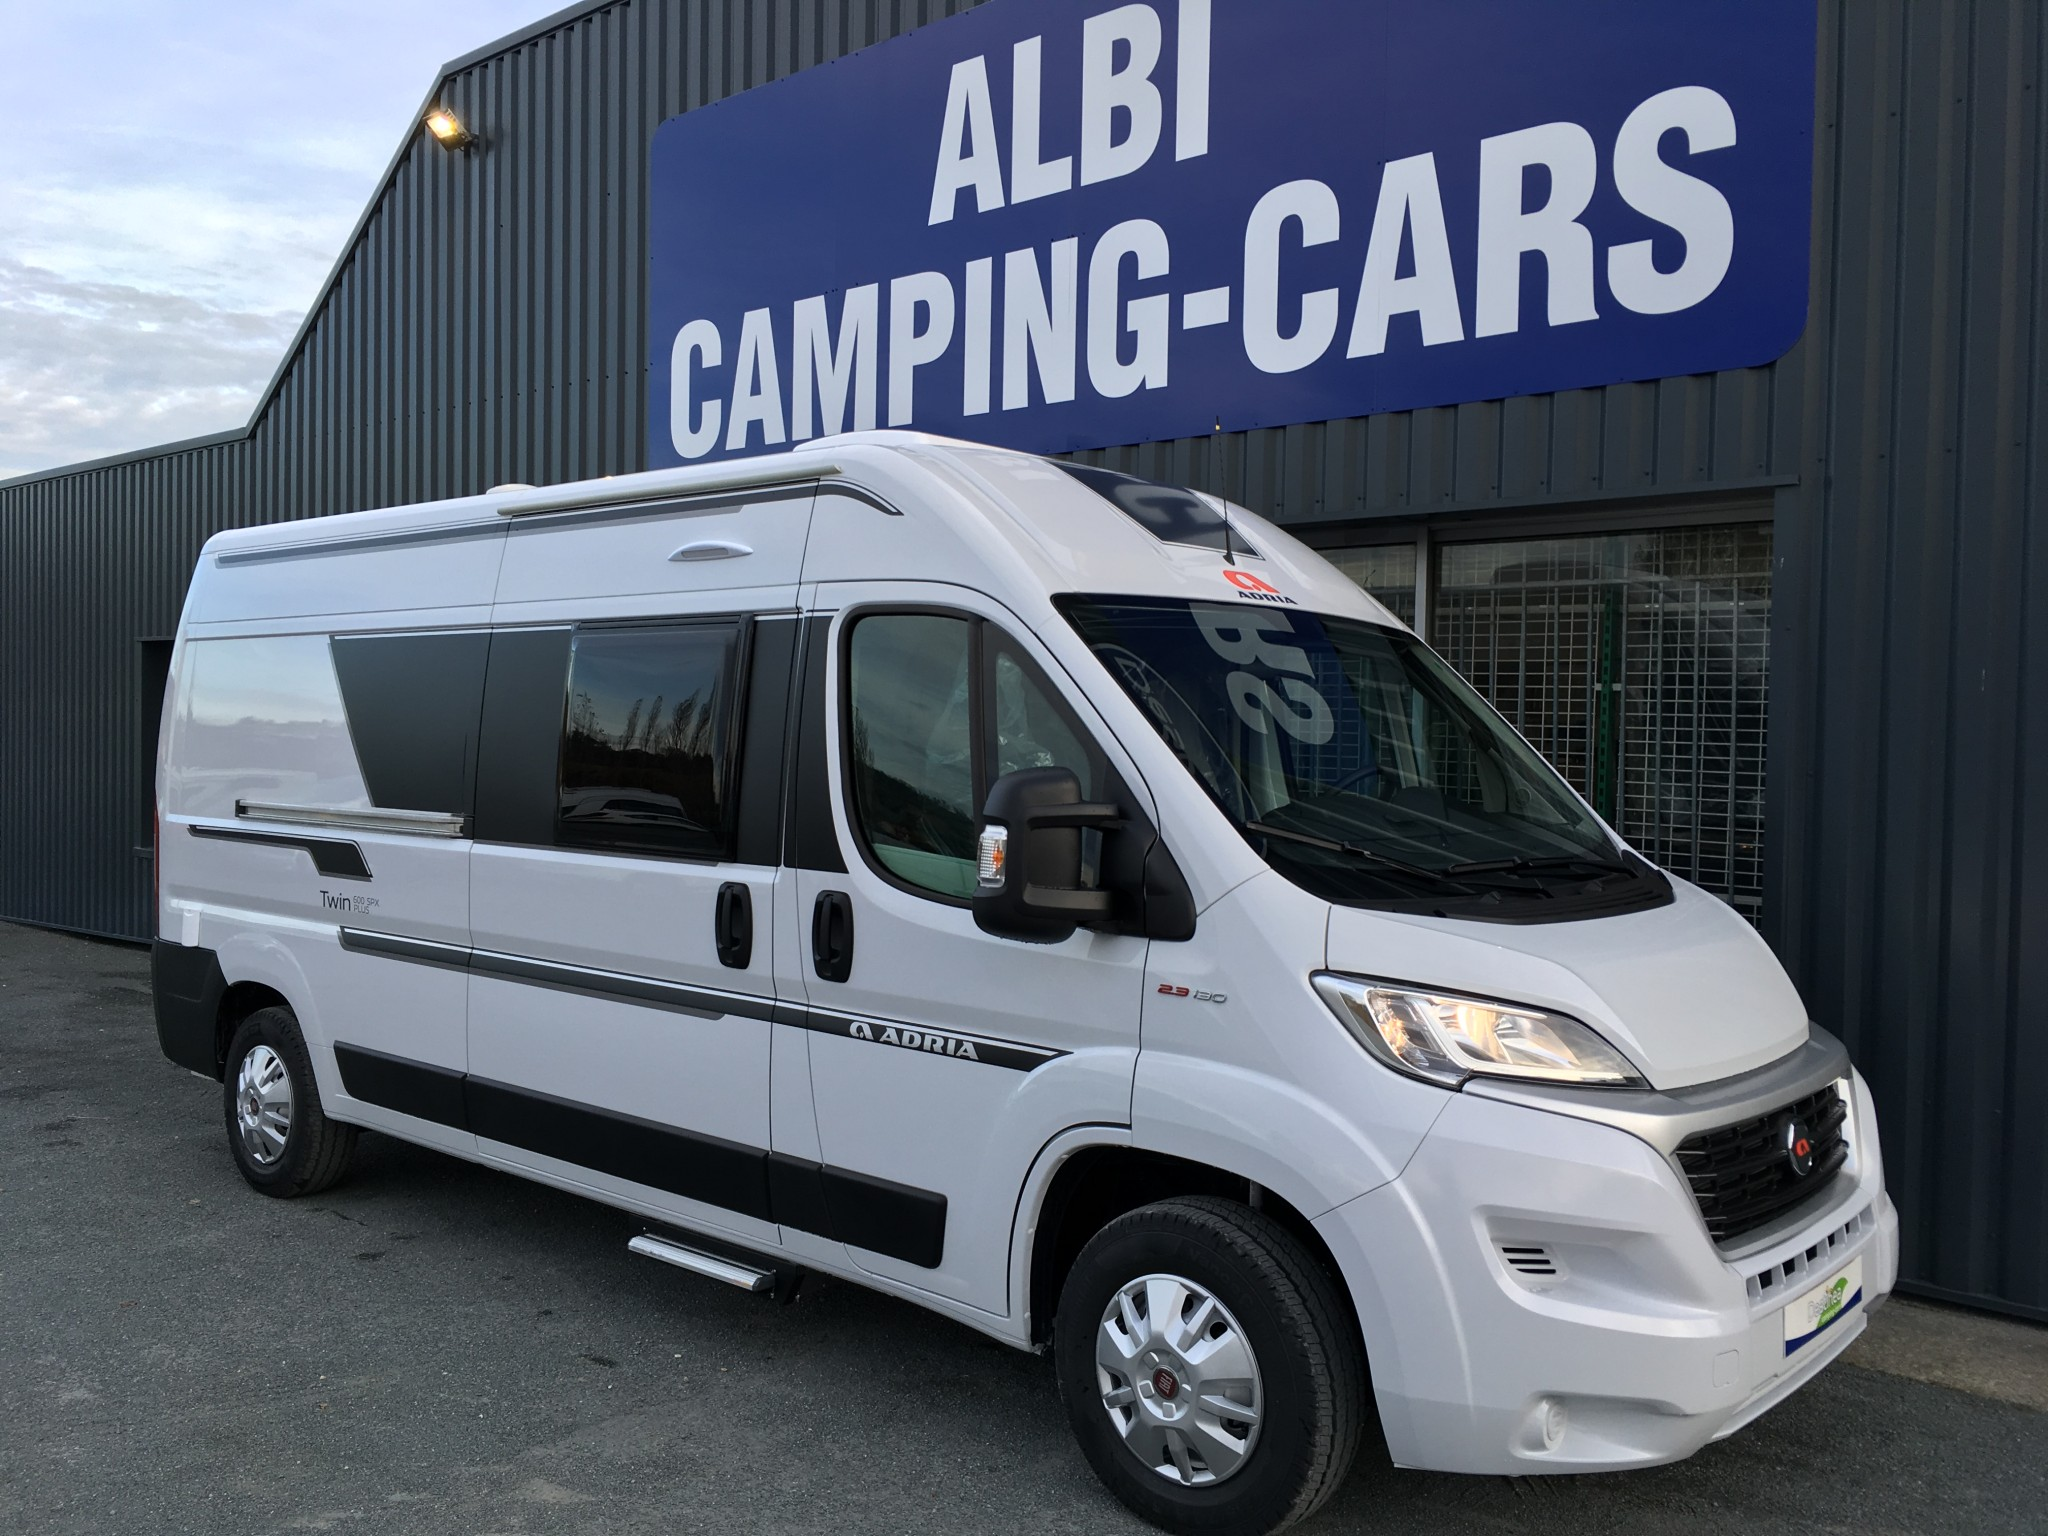 Camping-car ADRIA TWIN 600 SPX version plus